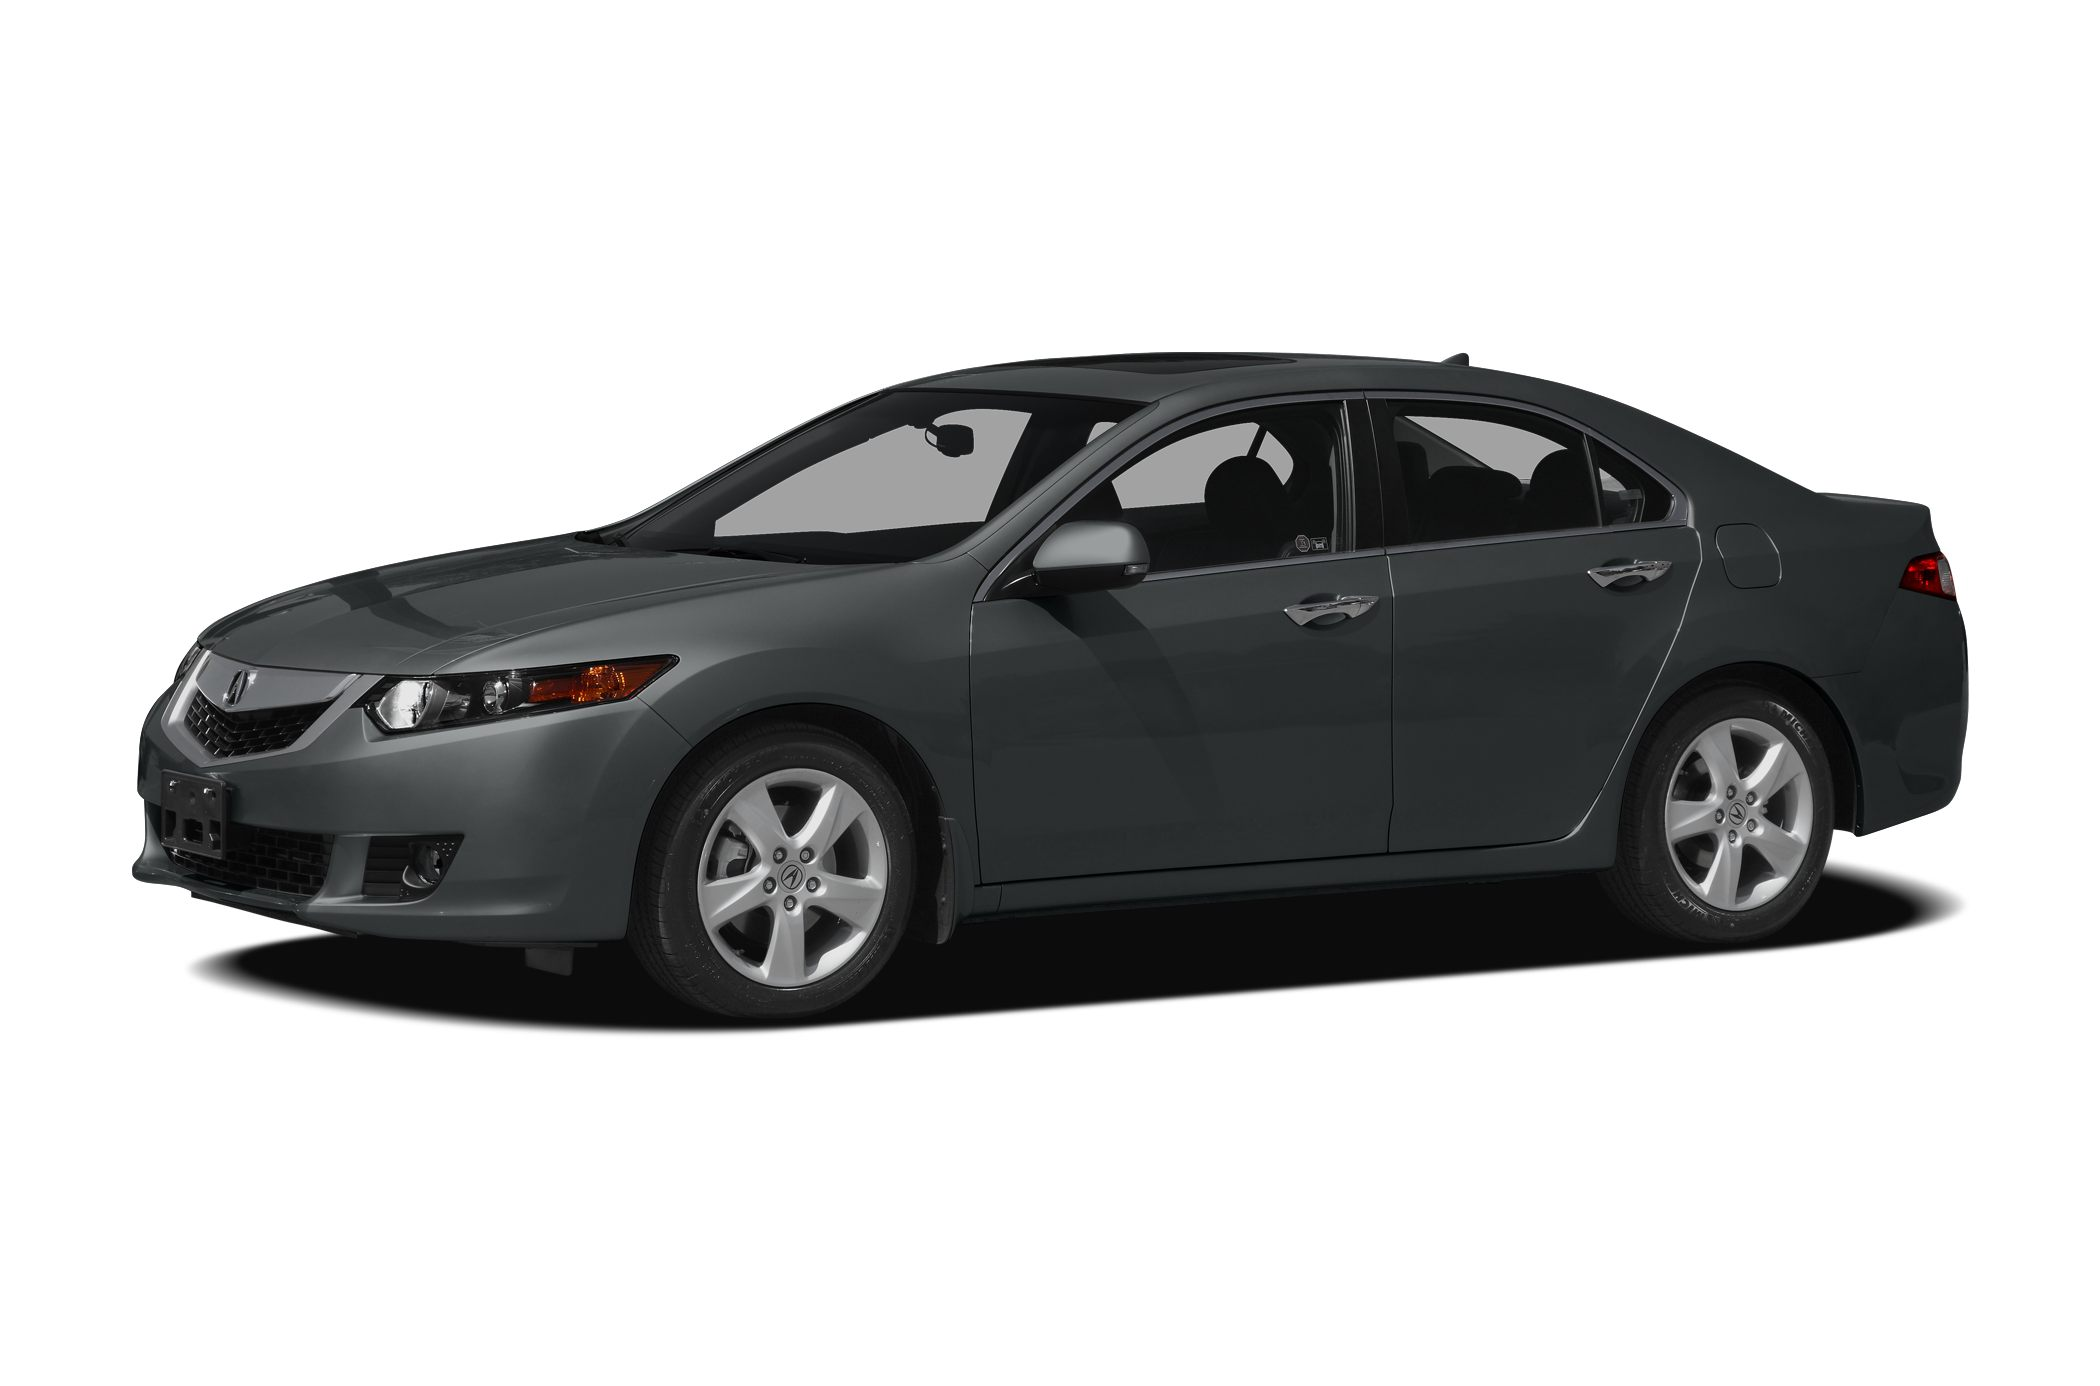 2009 Acura TSX Specs and Prices